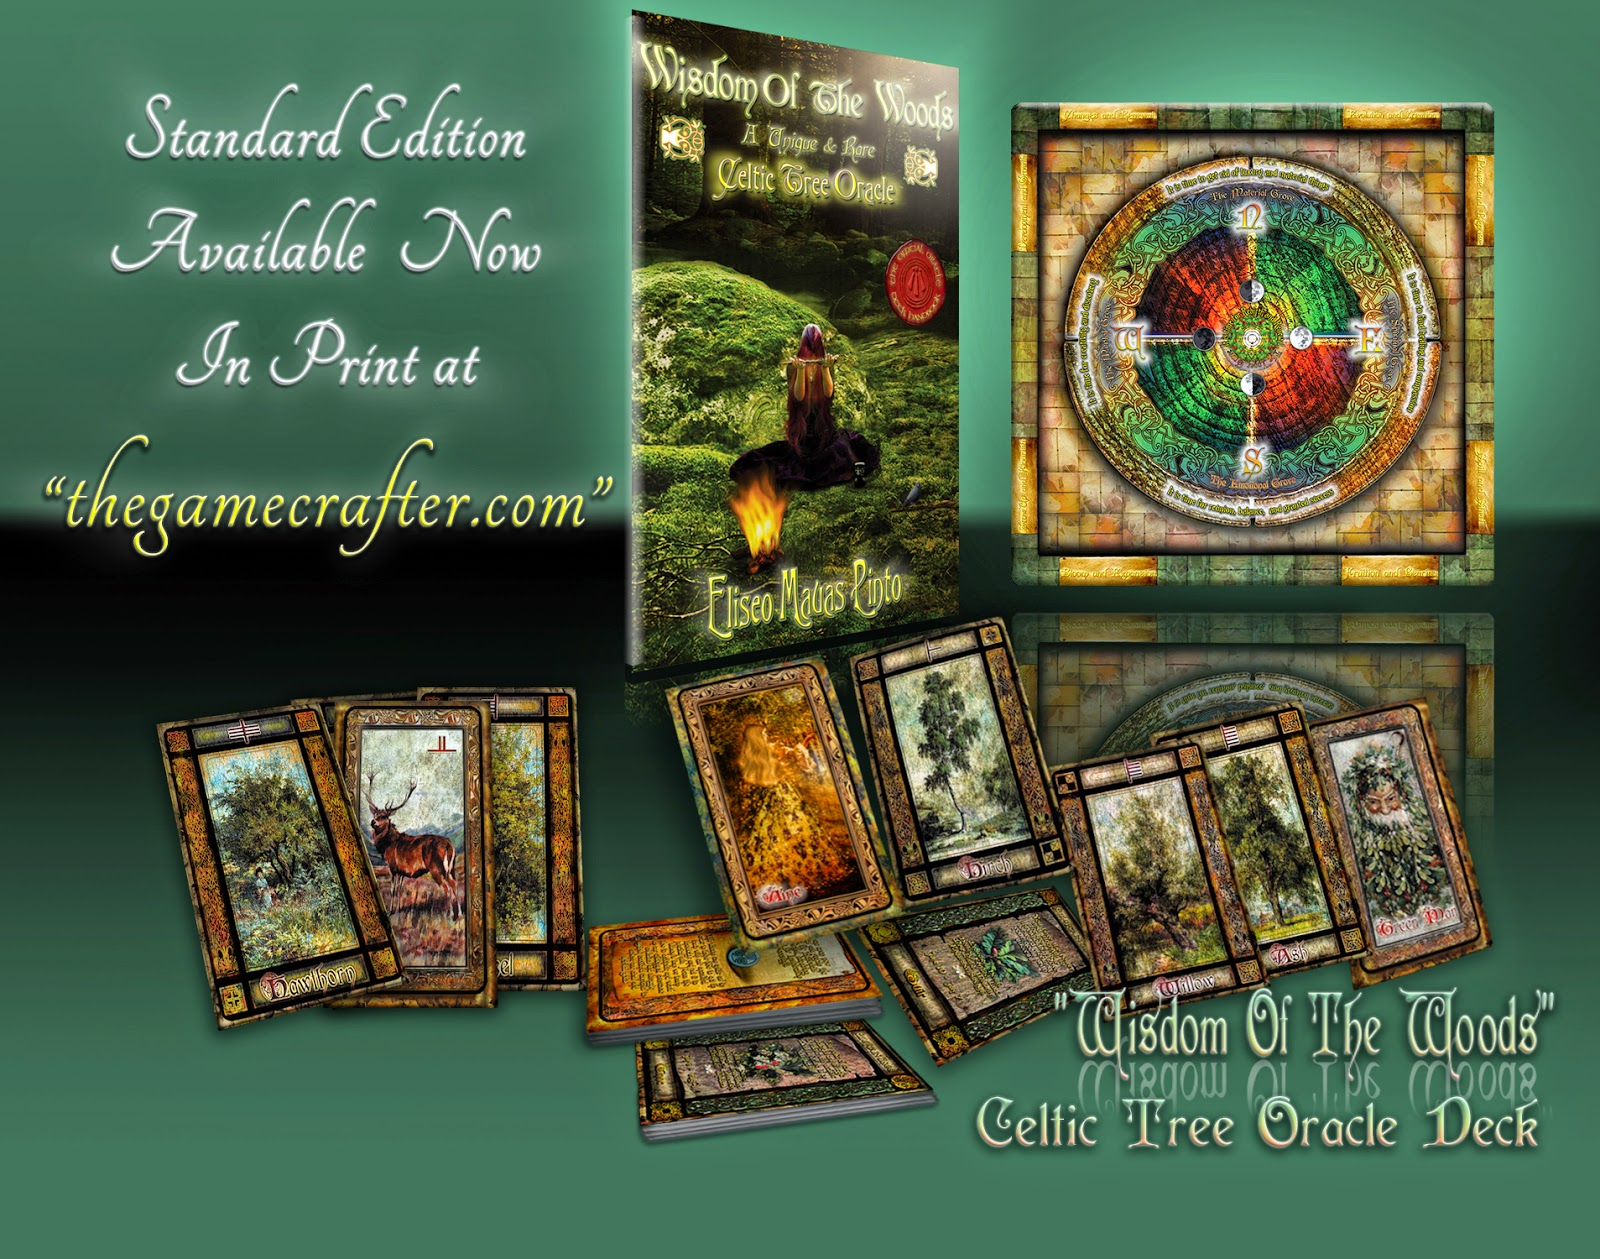 https://www.thegamecrafter.com/games/wisdom-of-the-woods-celtic-tree-oracle-standard-edition-